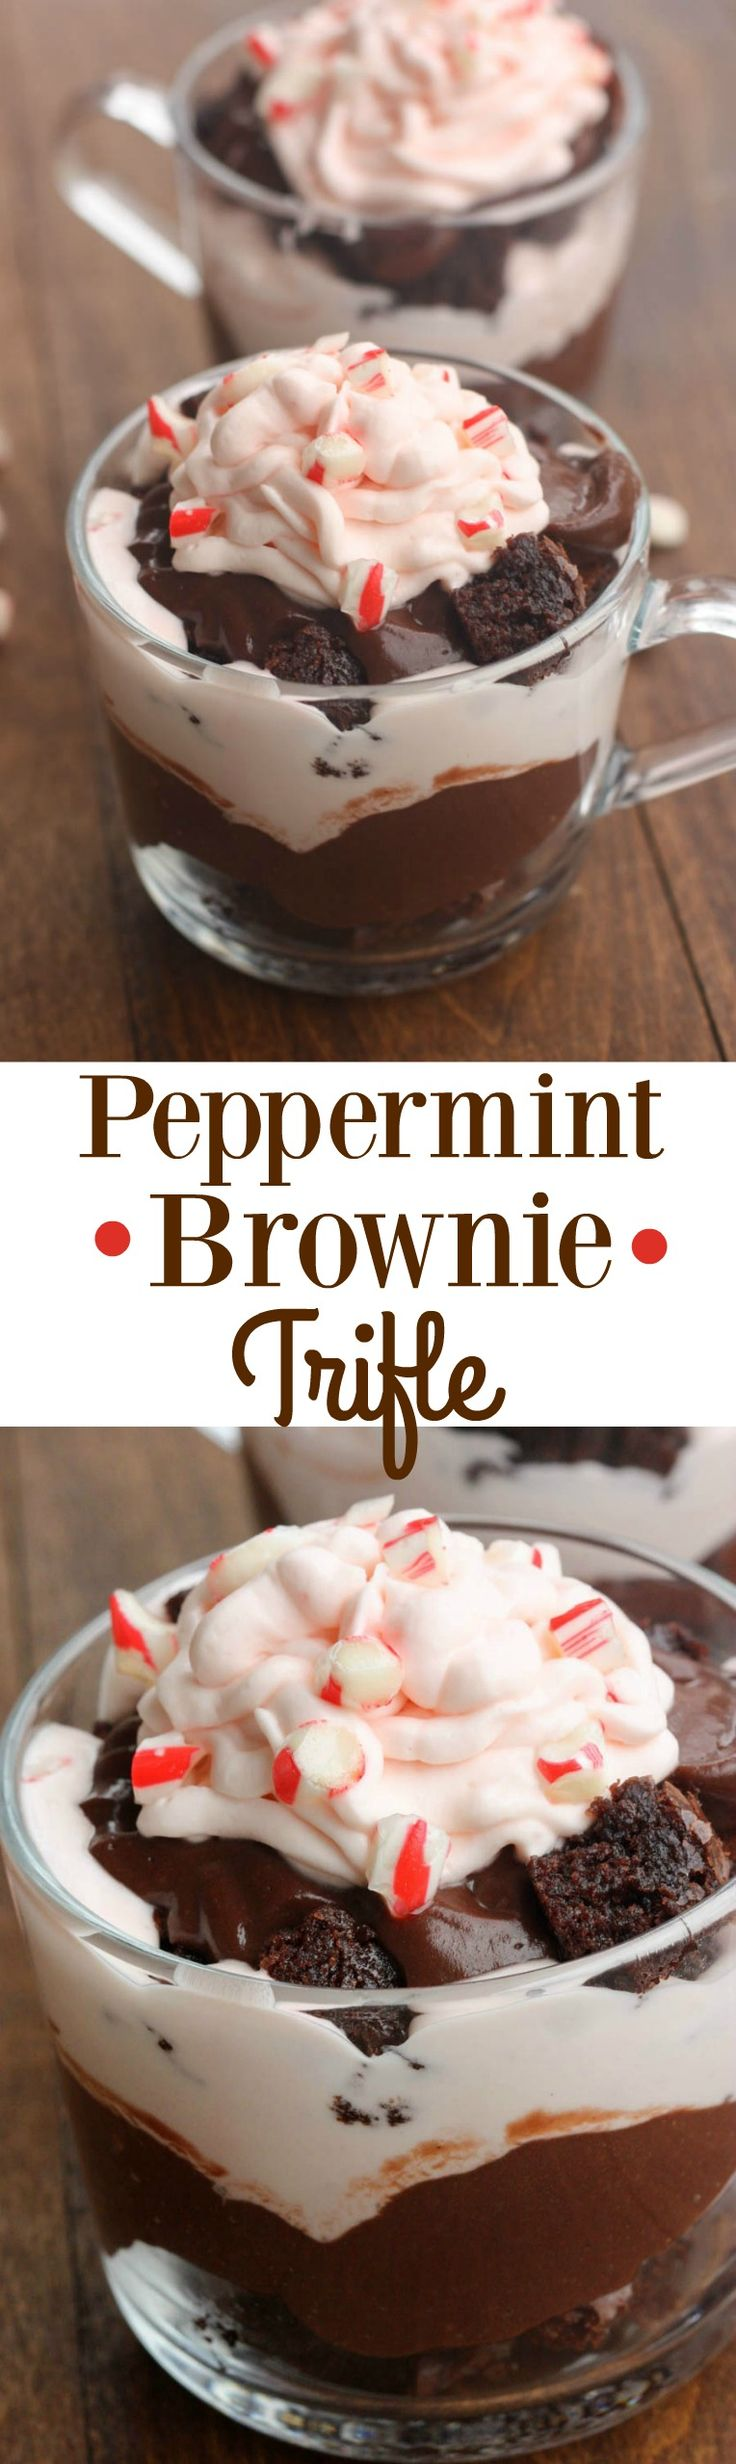 Peppermint Brownie Trifle includes layers of brownie, white chocolate mousse, chocolate pudding and crushed peppermint candies. | Tastes Better From Scratch